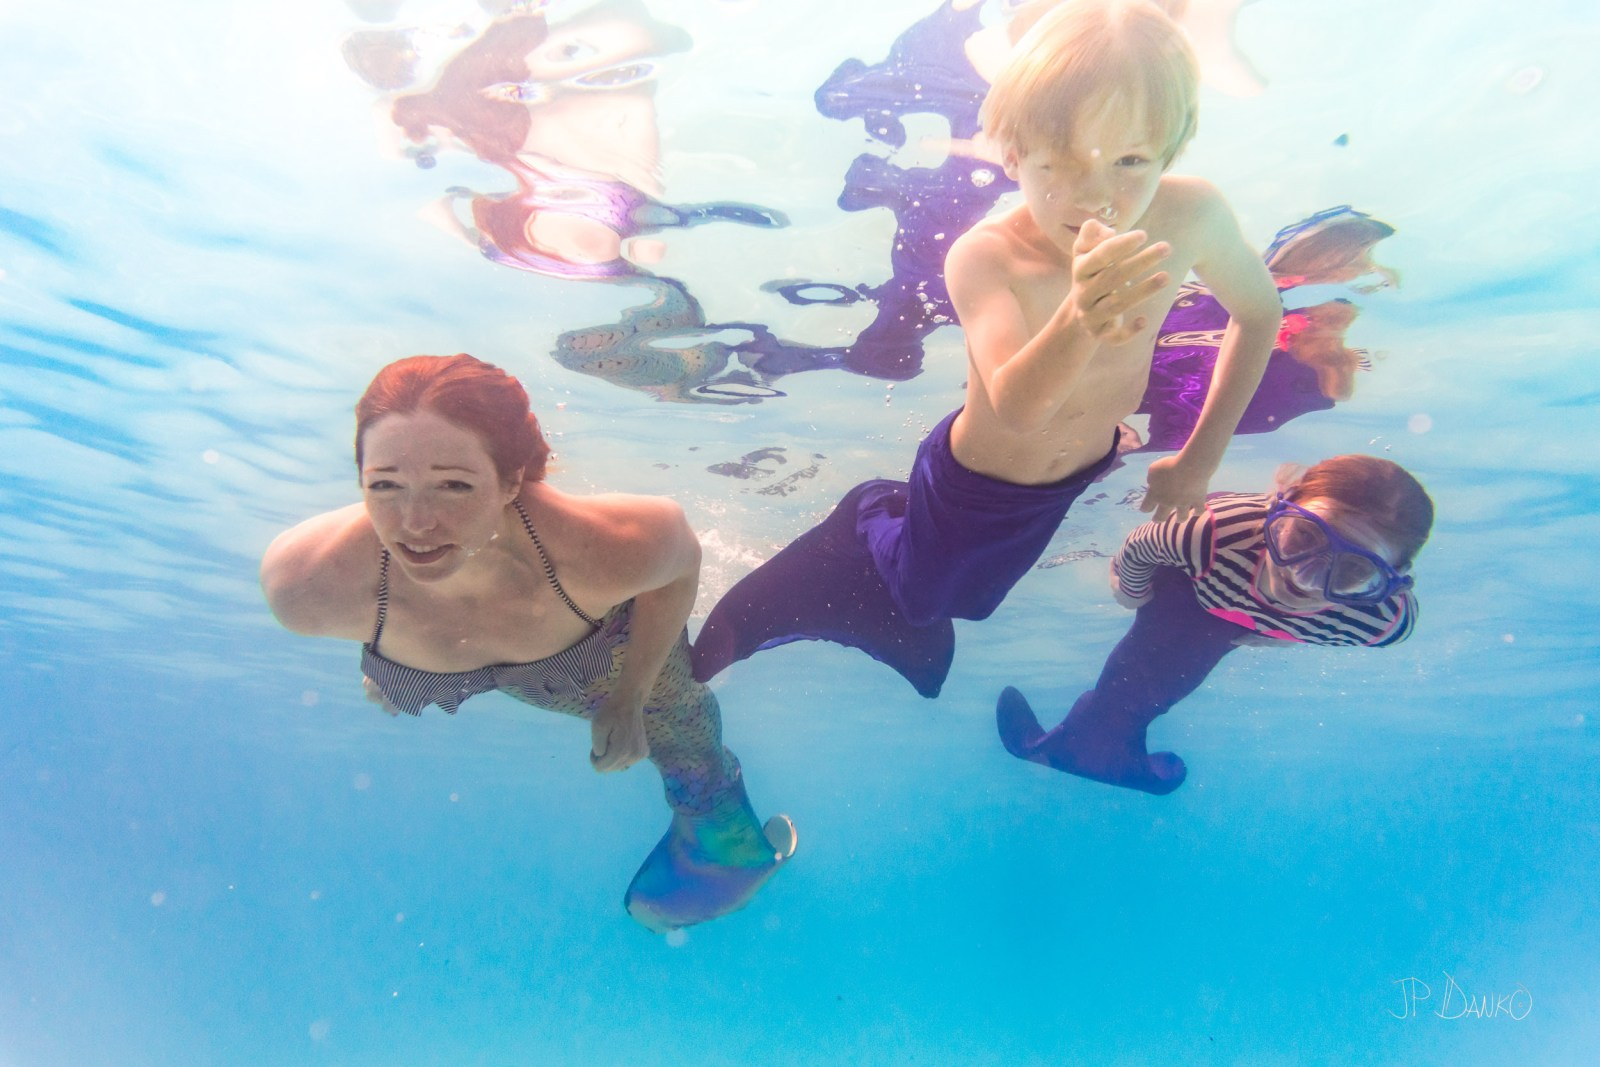 Underwater view of mom sond and saughter on holiday swimming in pool with colorful mermaid tails